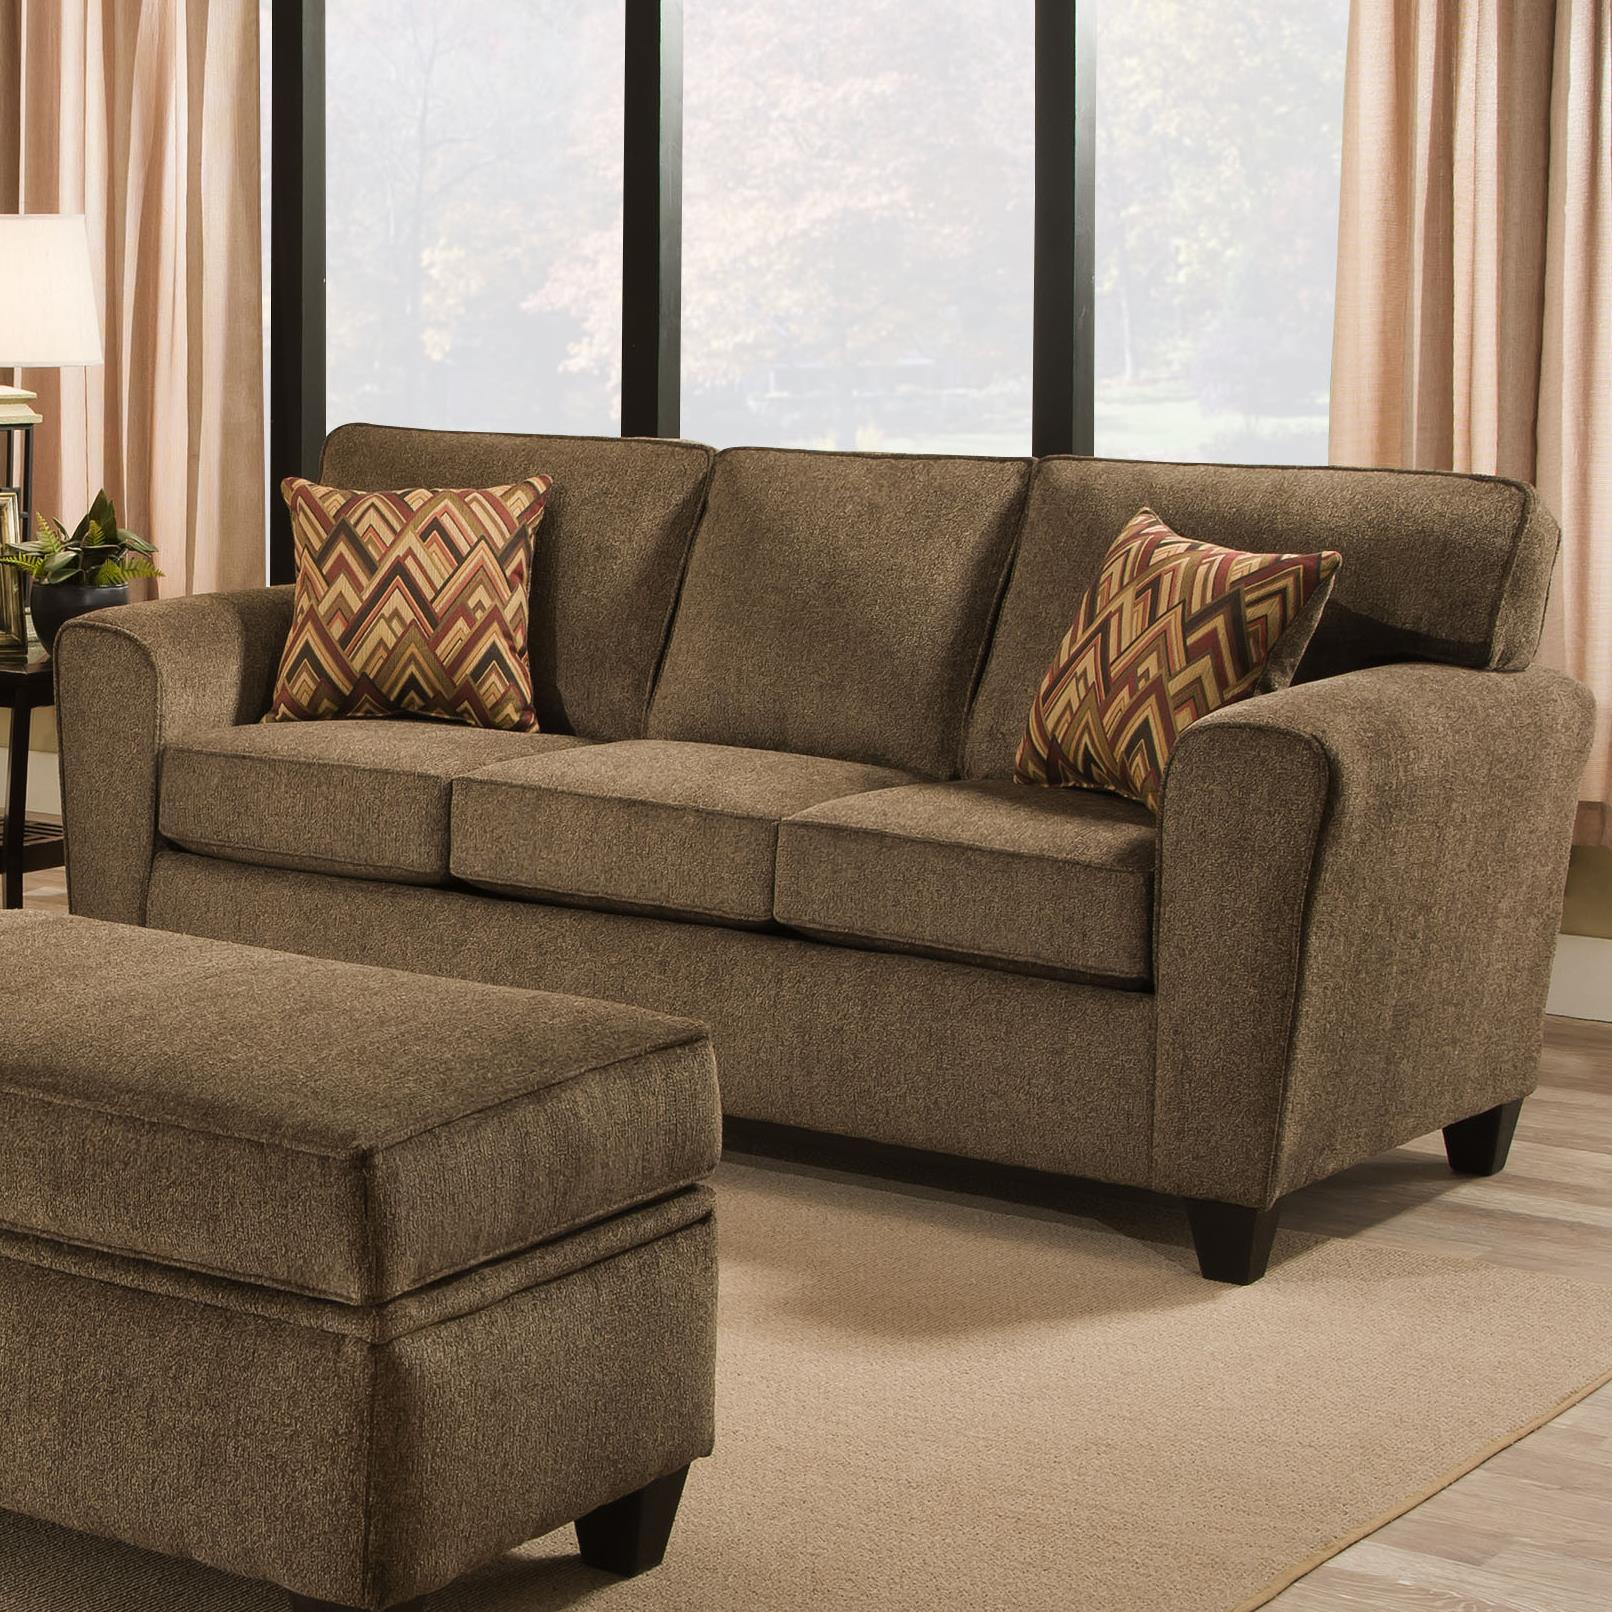 American Furniture 3100 Sofa - Item Number 3103-Cornell-Cocoa : american furniture sectional - Sectionals, Sofas & Couches